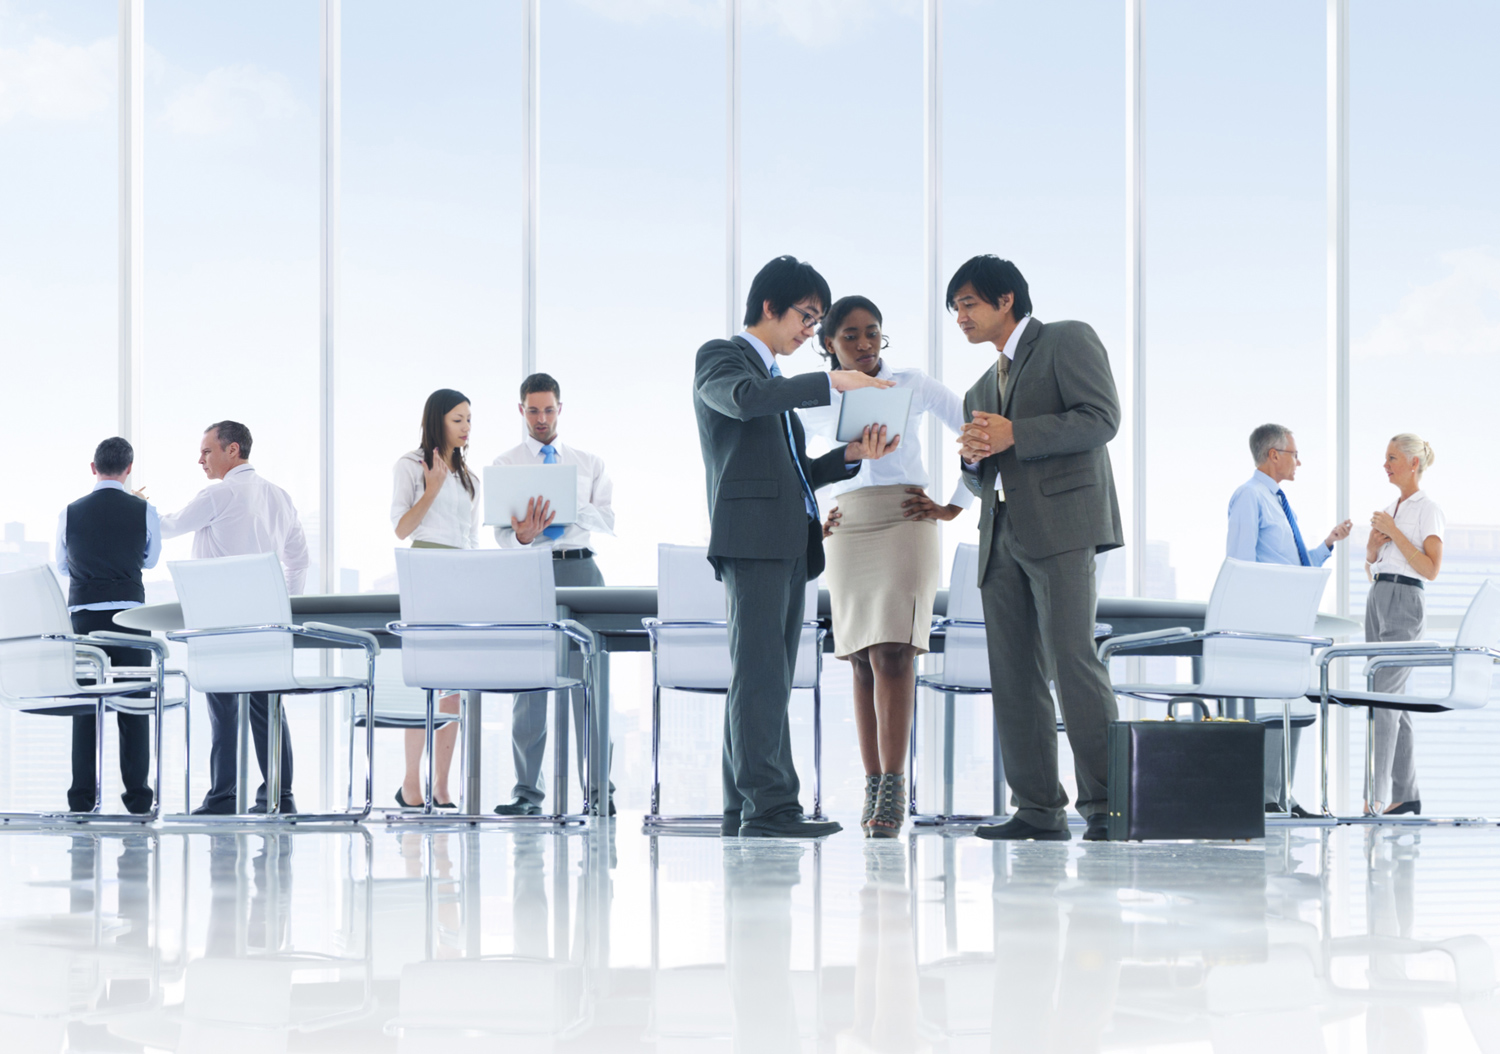 Business people meeting in a sleek office space